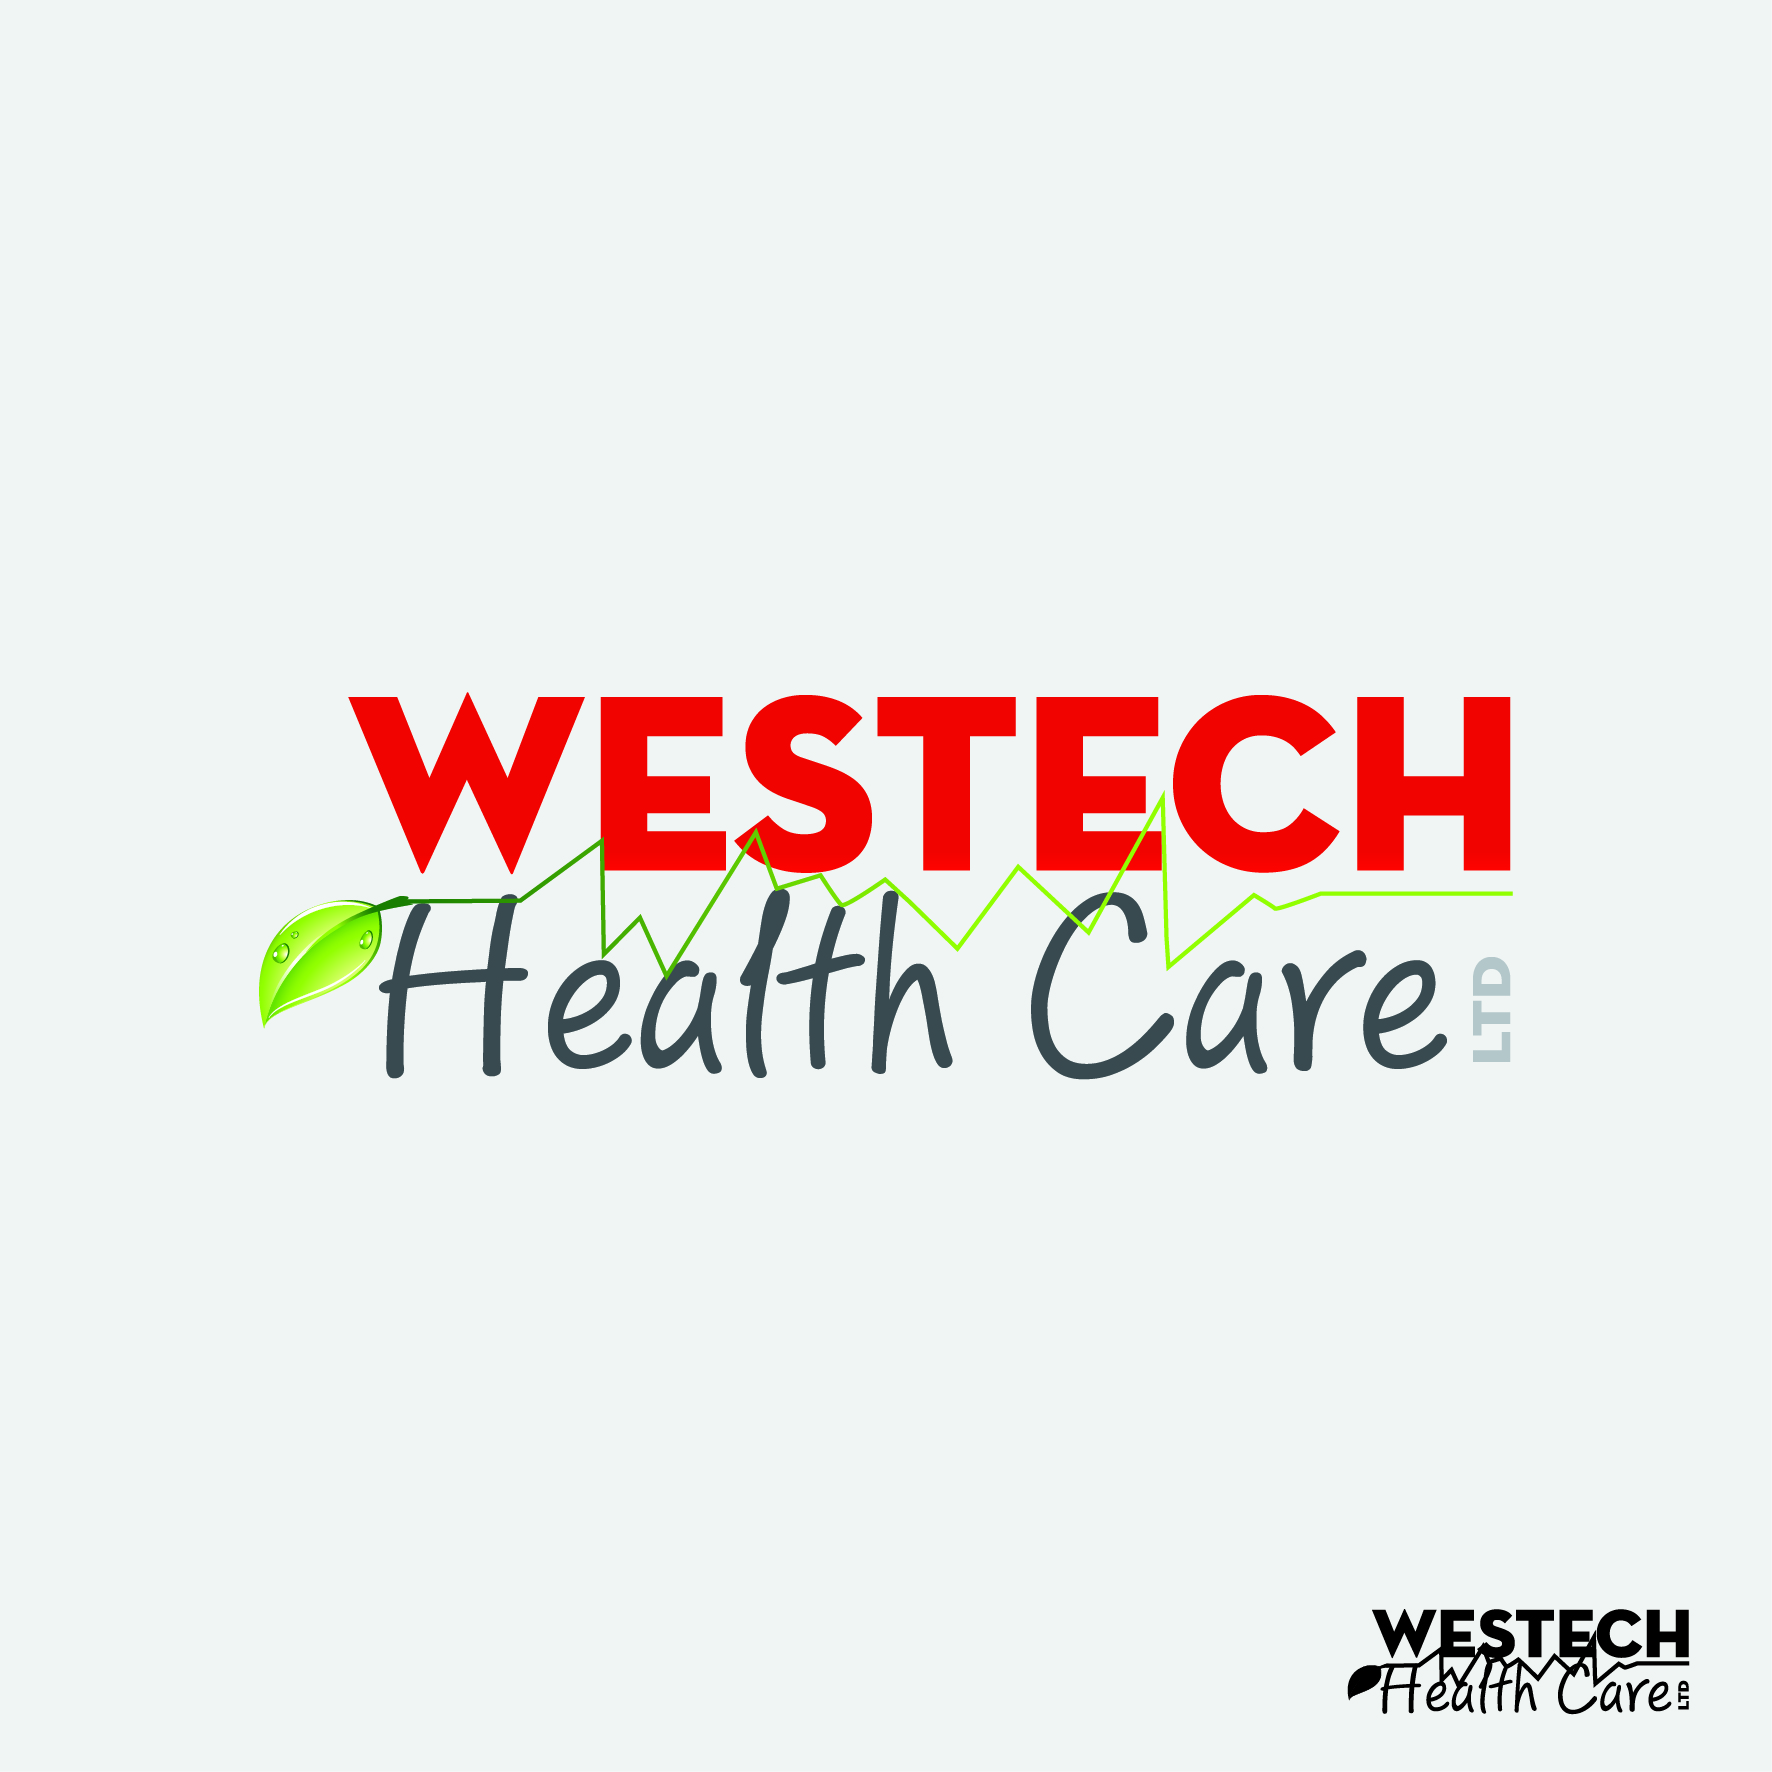 Logo Design by nTia - Entry No. 62 in the Logo Design Contest Creative Logo Design for Westech Health Care Ltd..